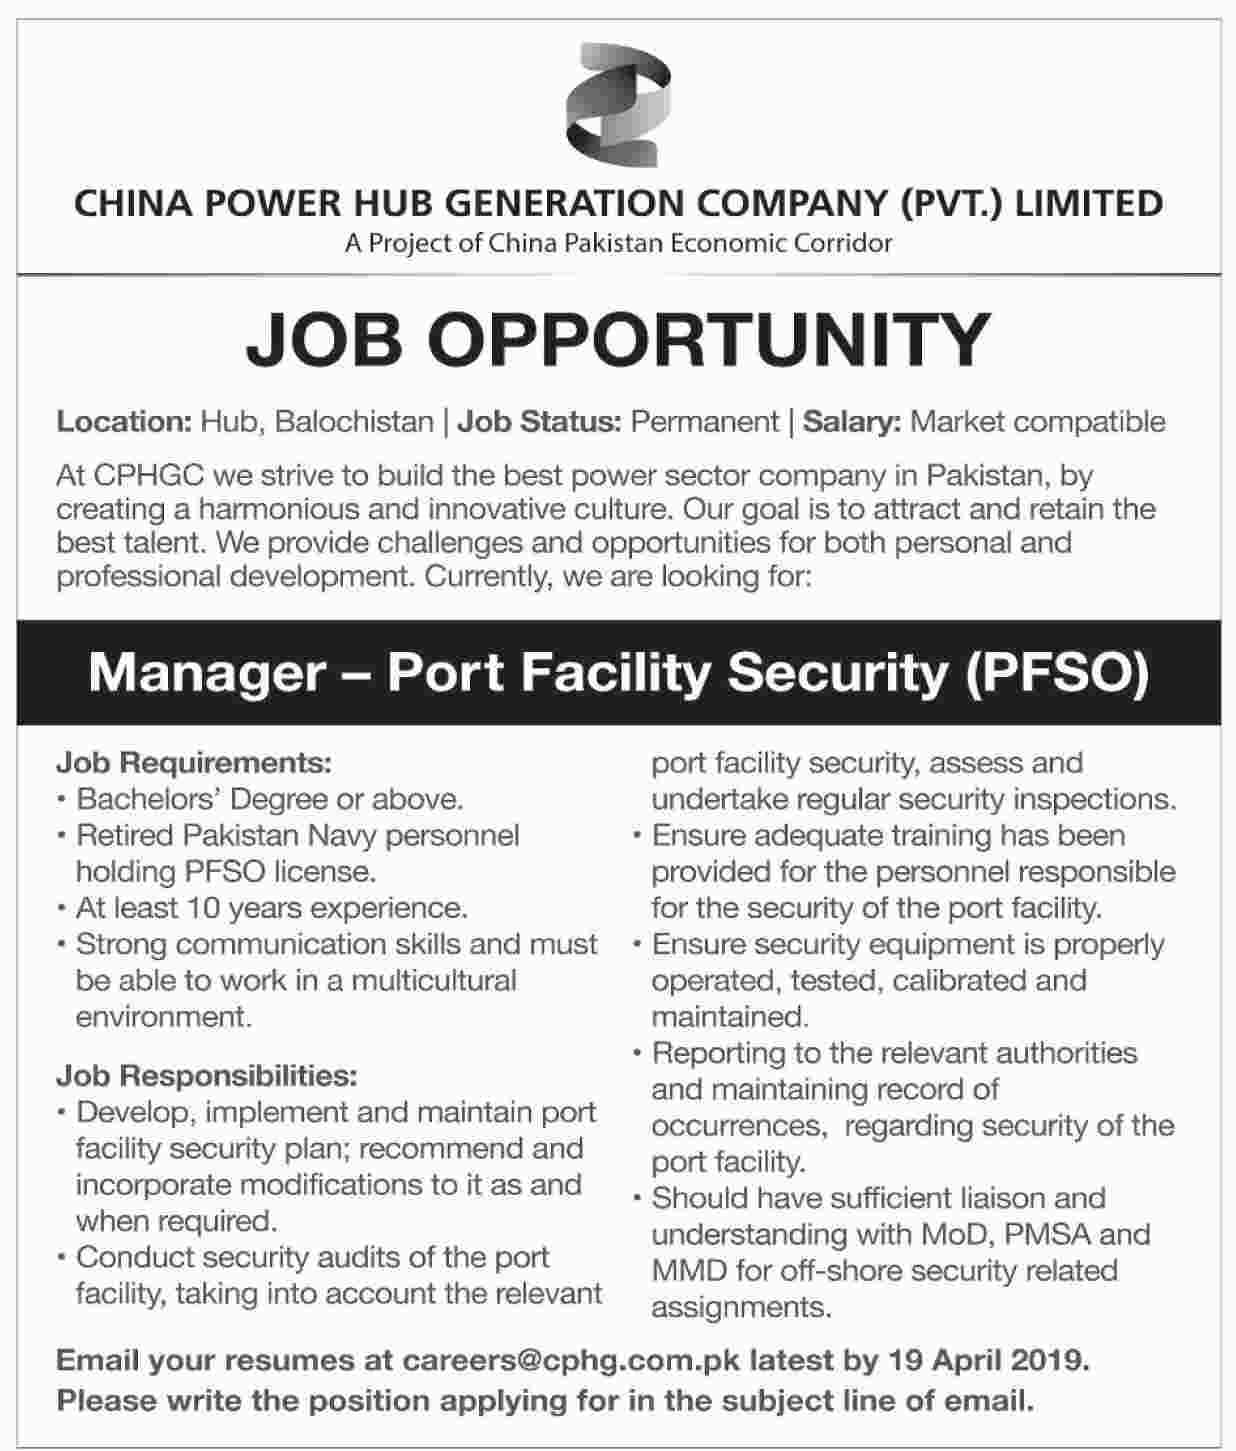 China Power Hub Generation Company Latest Jobs Project of CPEC